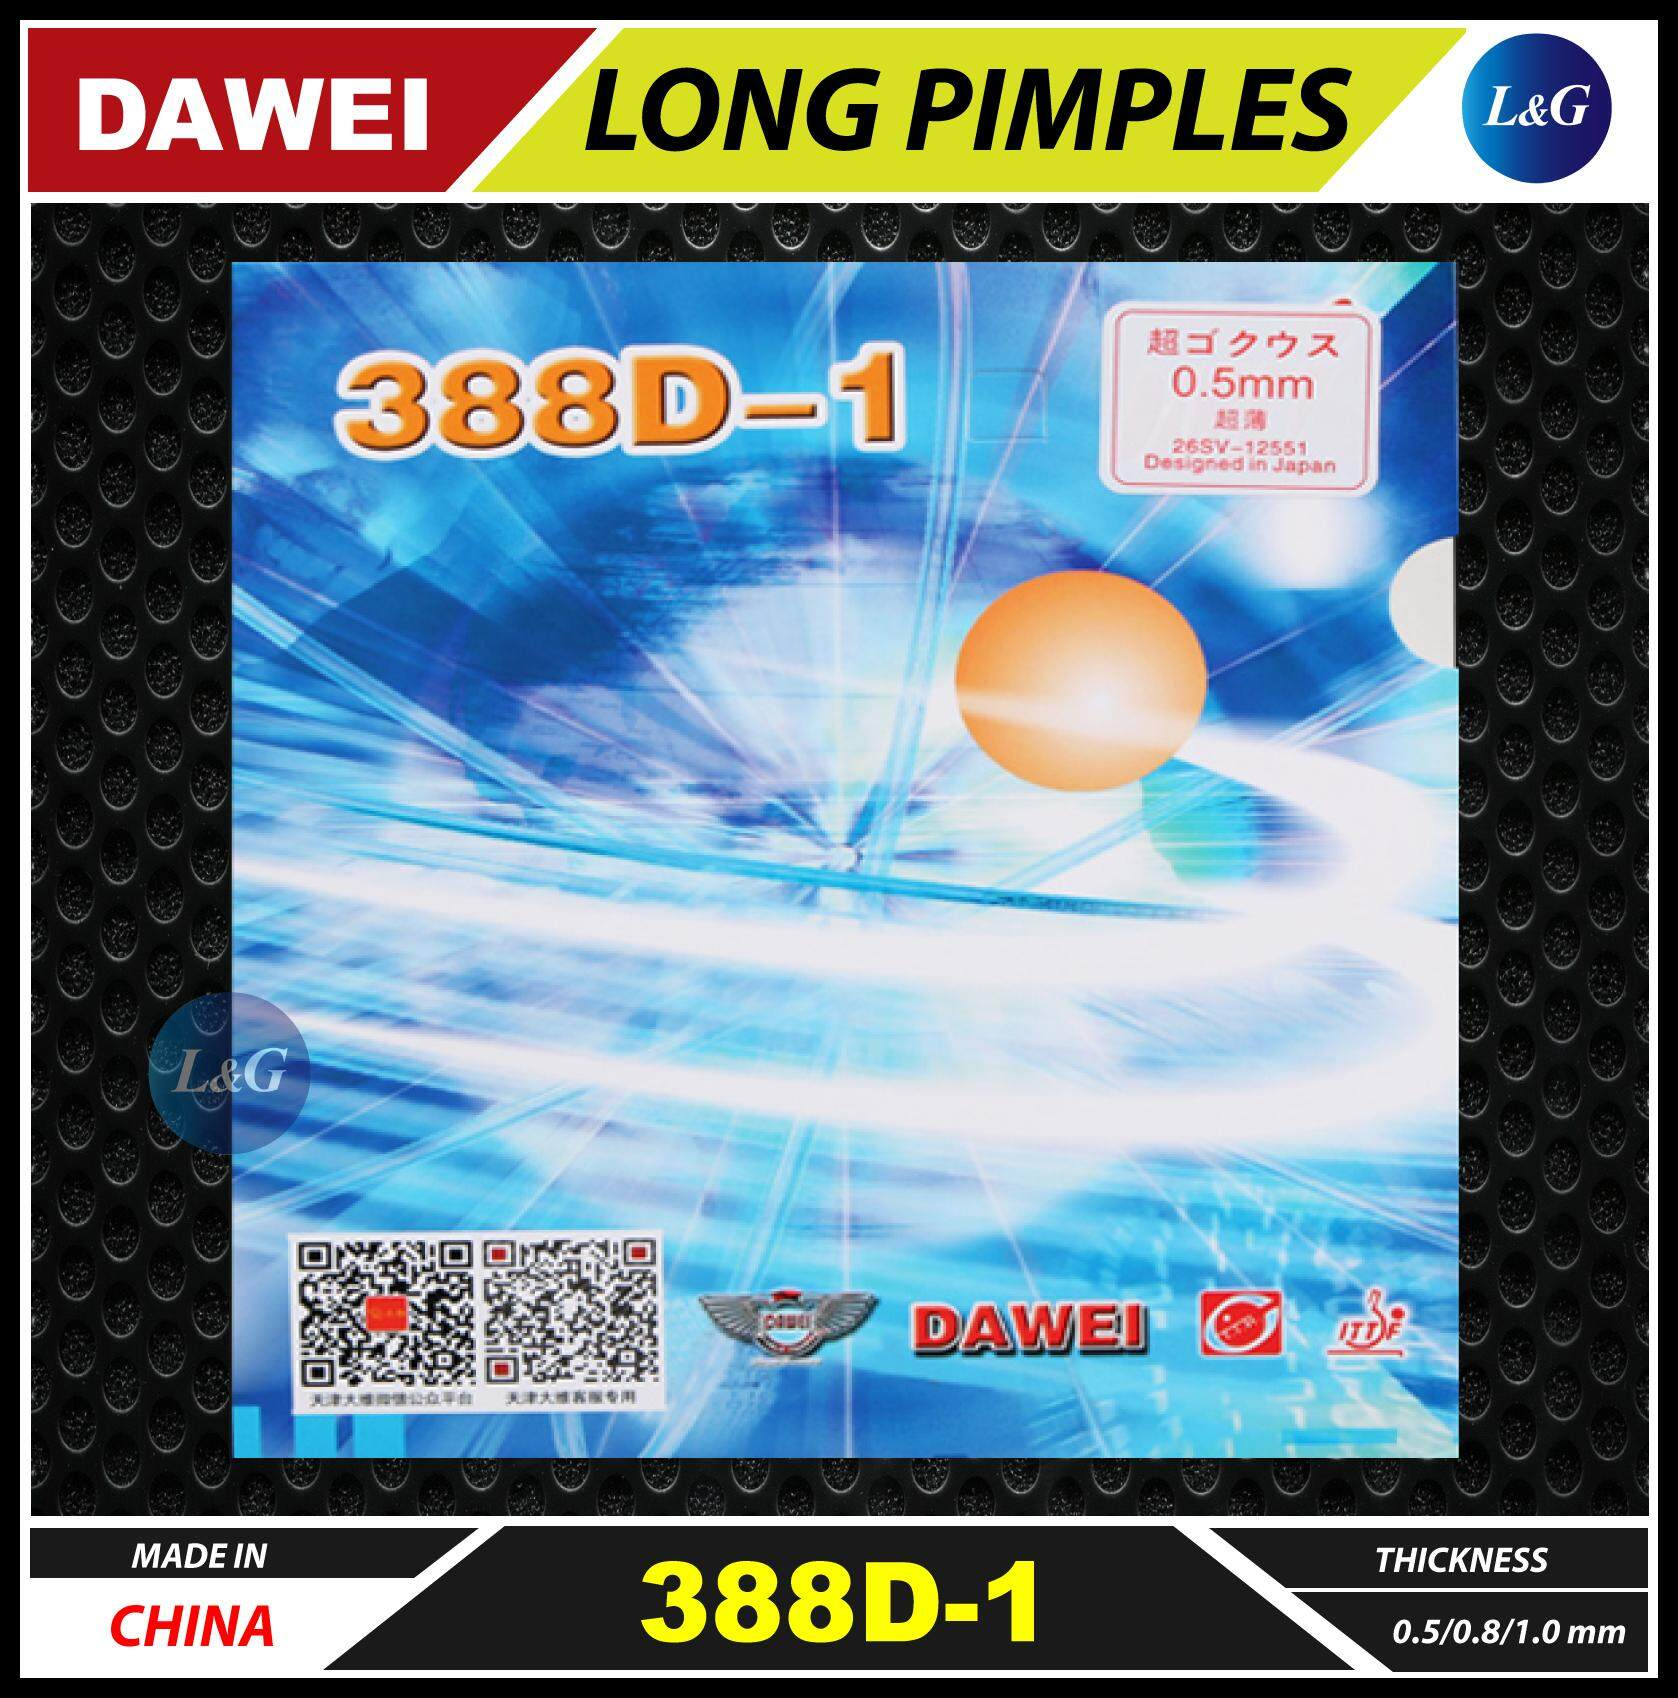 DAWEI 388D-1 Long Pimples with Sponge Table Tennis Ping Pong Rubber Sheet 0.5mm / 0.7mm / 1.0mm Made In China ITTF Approved